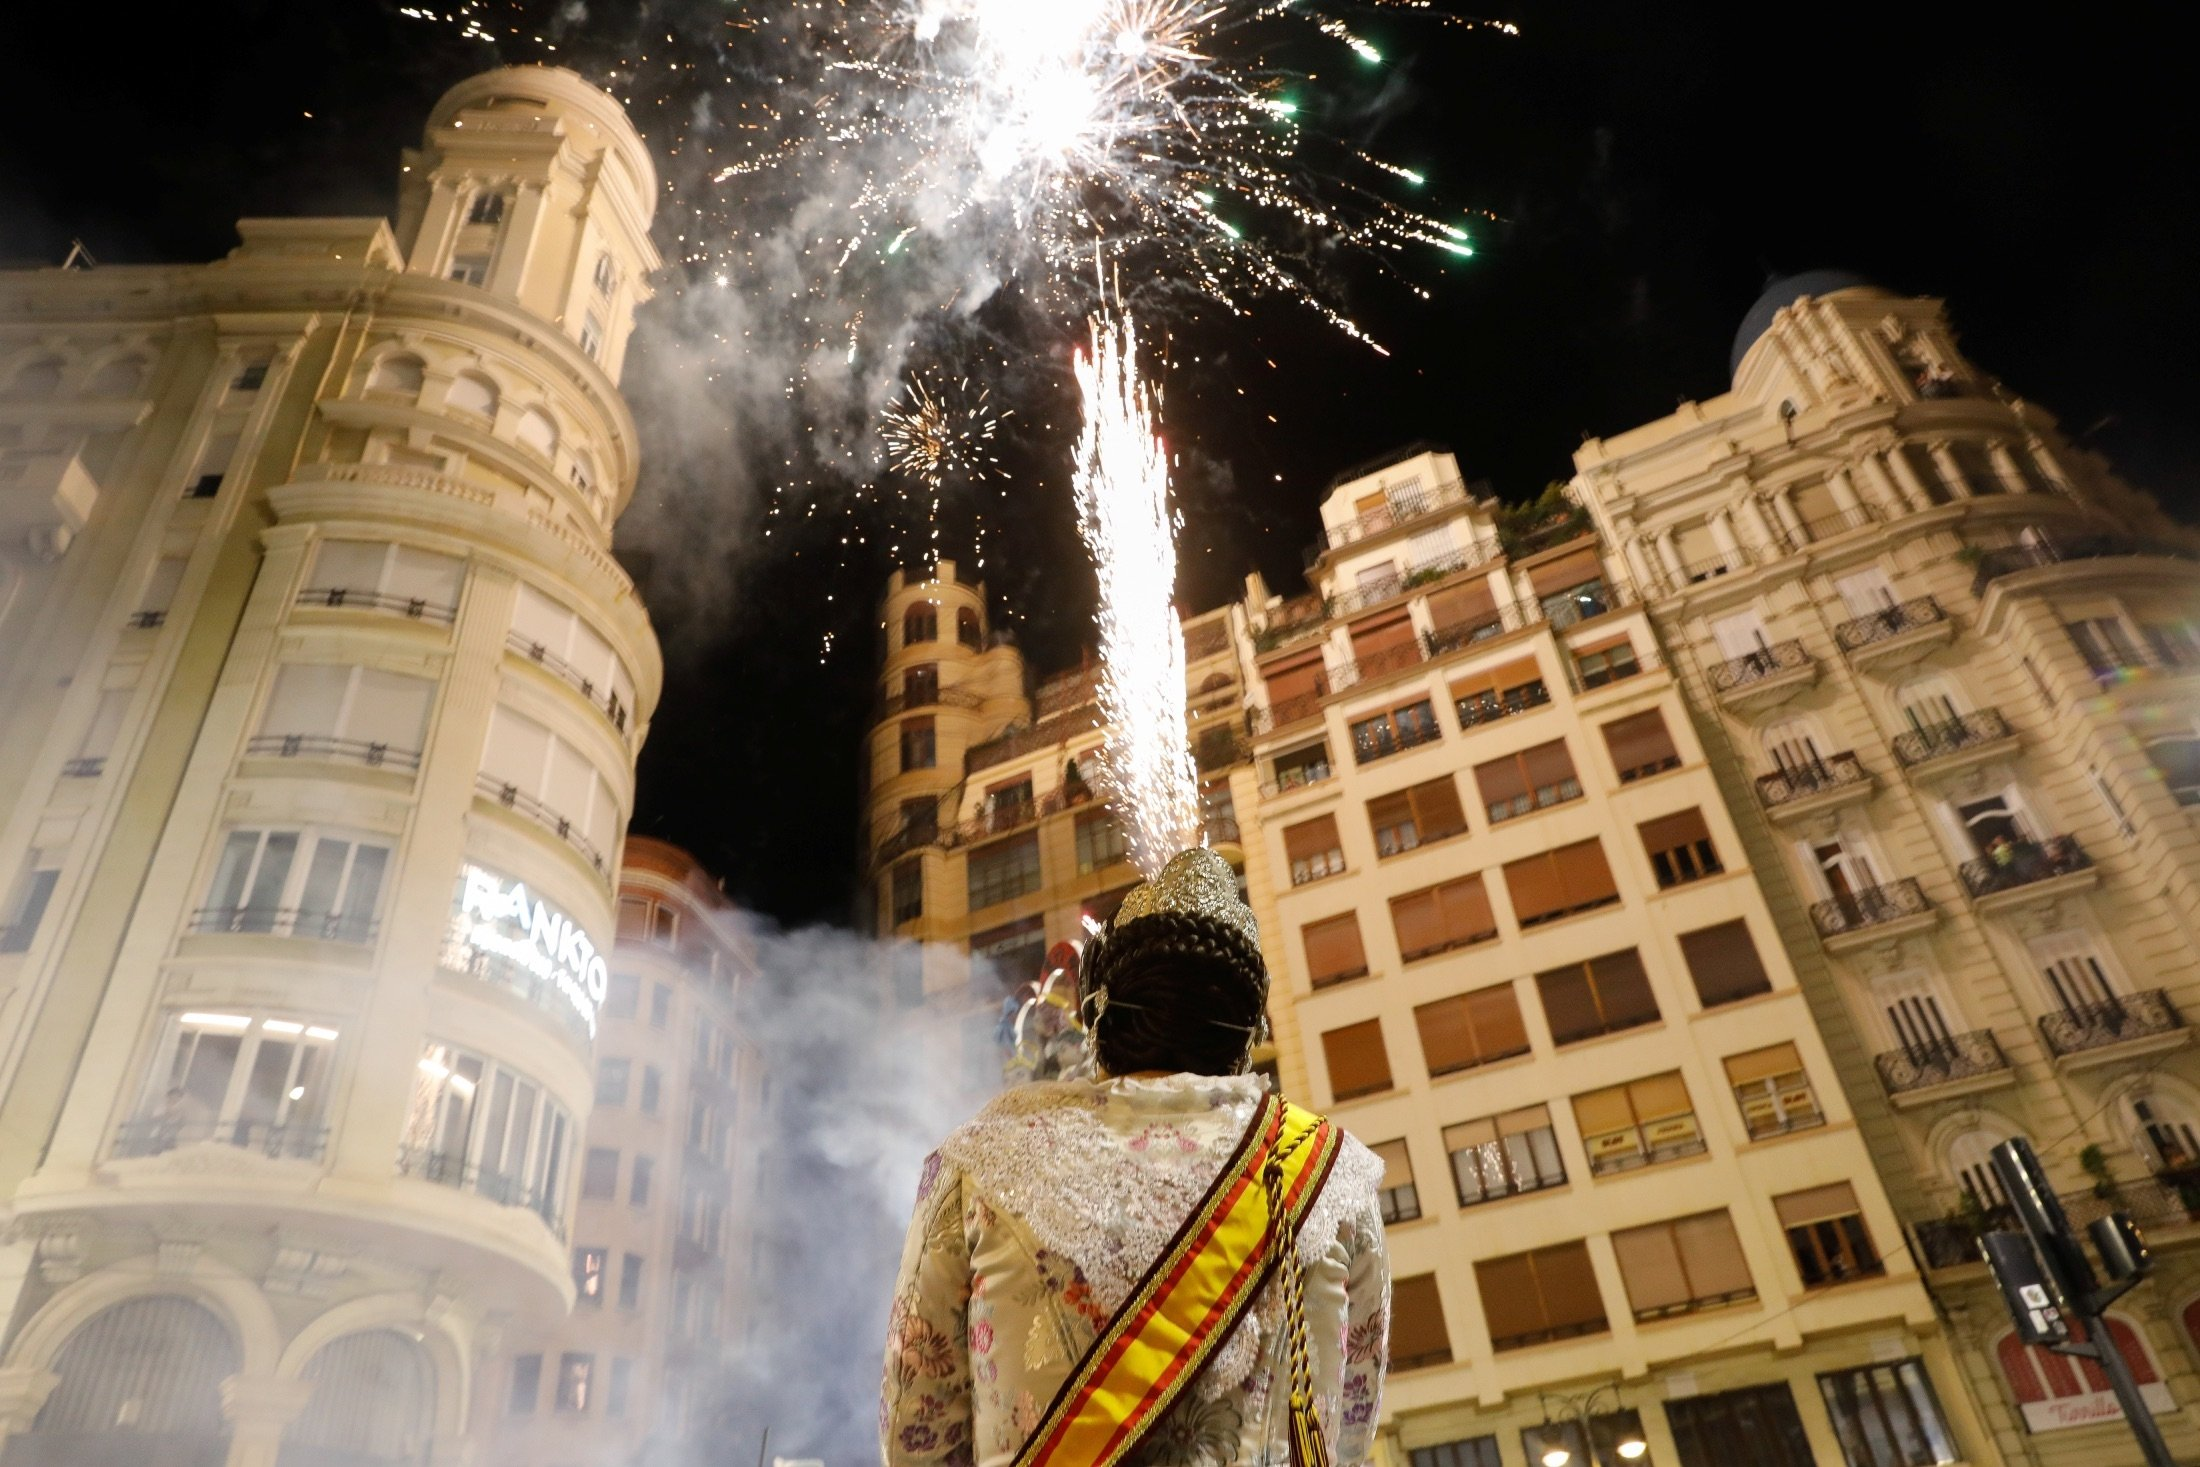 A person watches as figures burn during the end of the Fallas festival, which welcomes Spring and commemorates St. Joseph's Day, in Valencia, Spain, Sept. 5, 2021. (Reuters Photo)